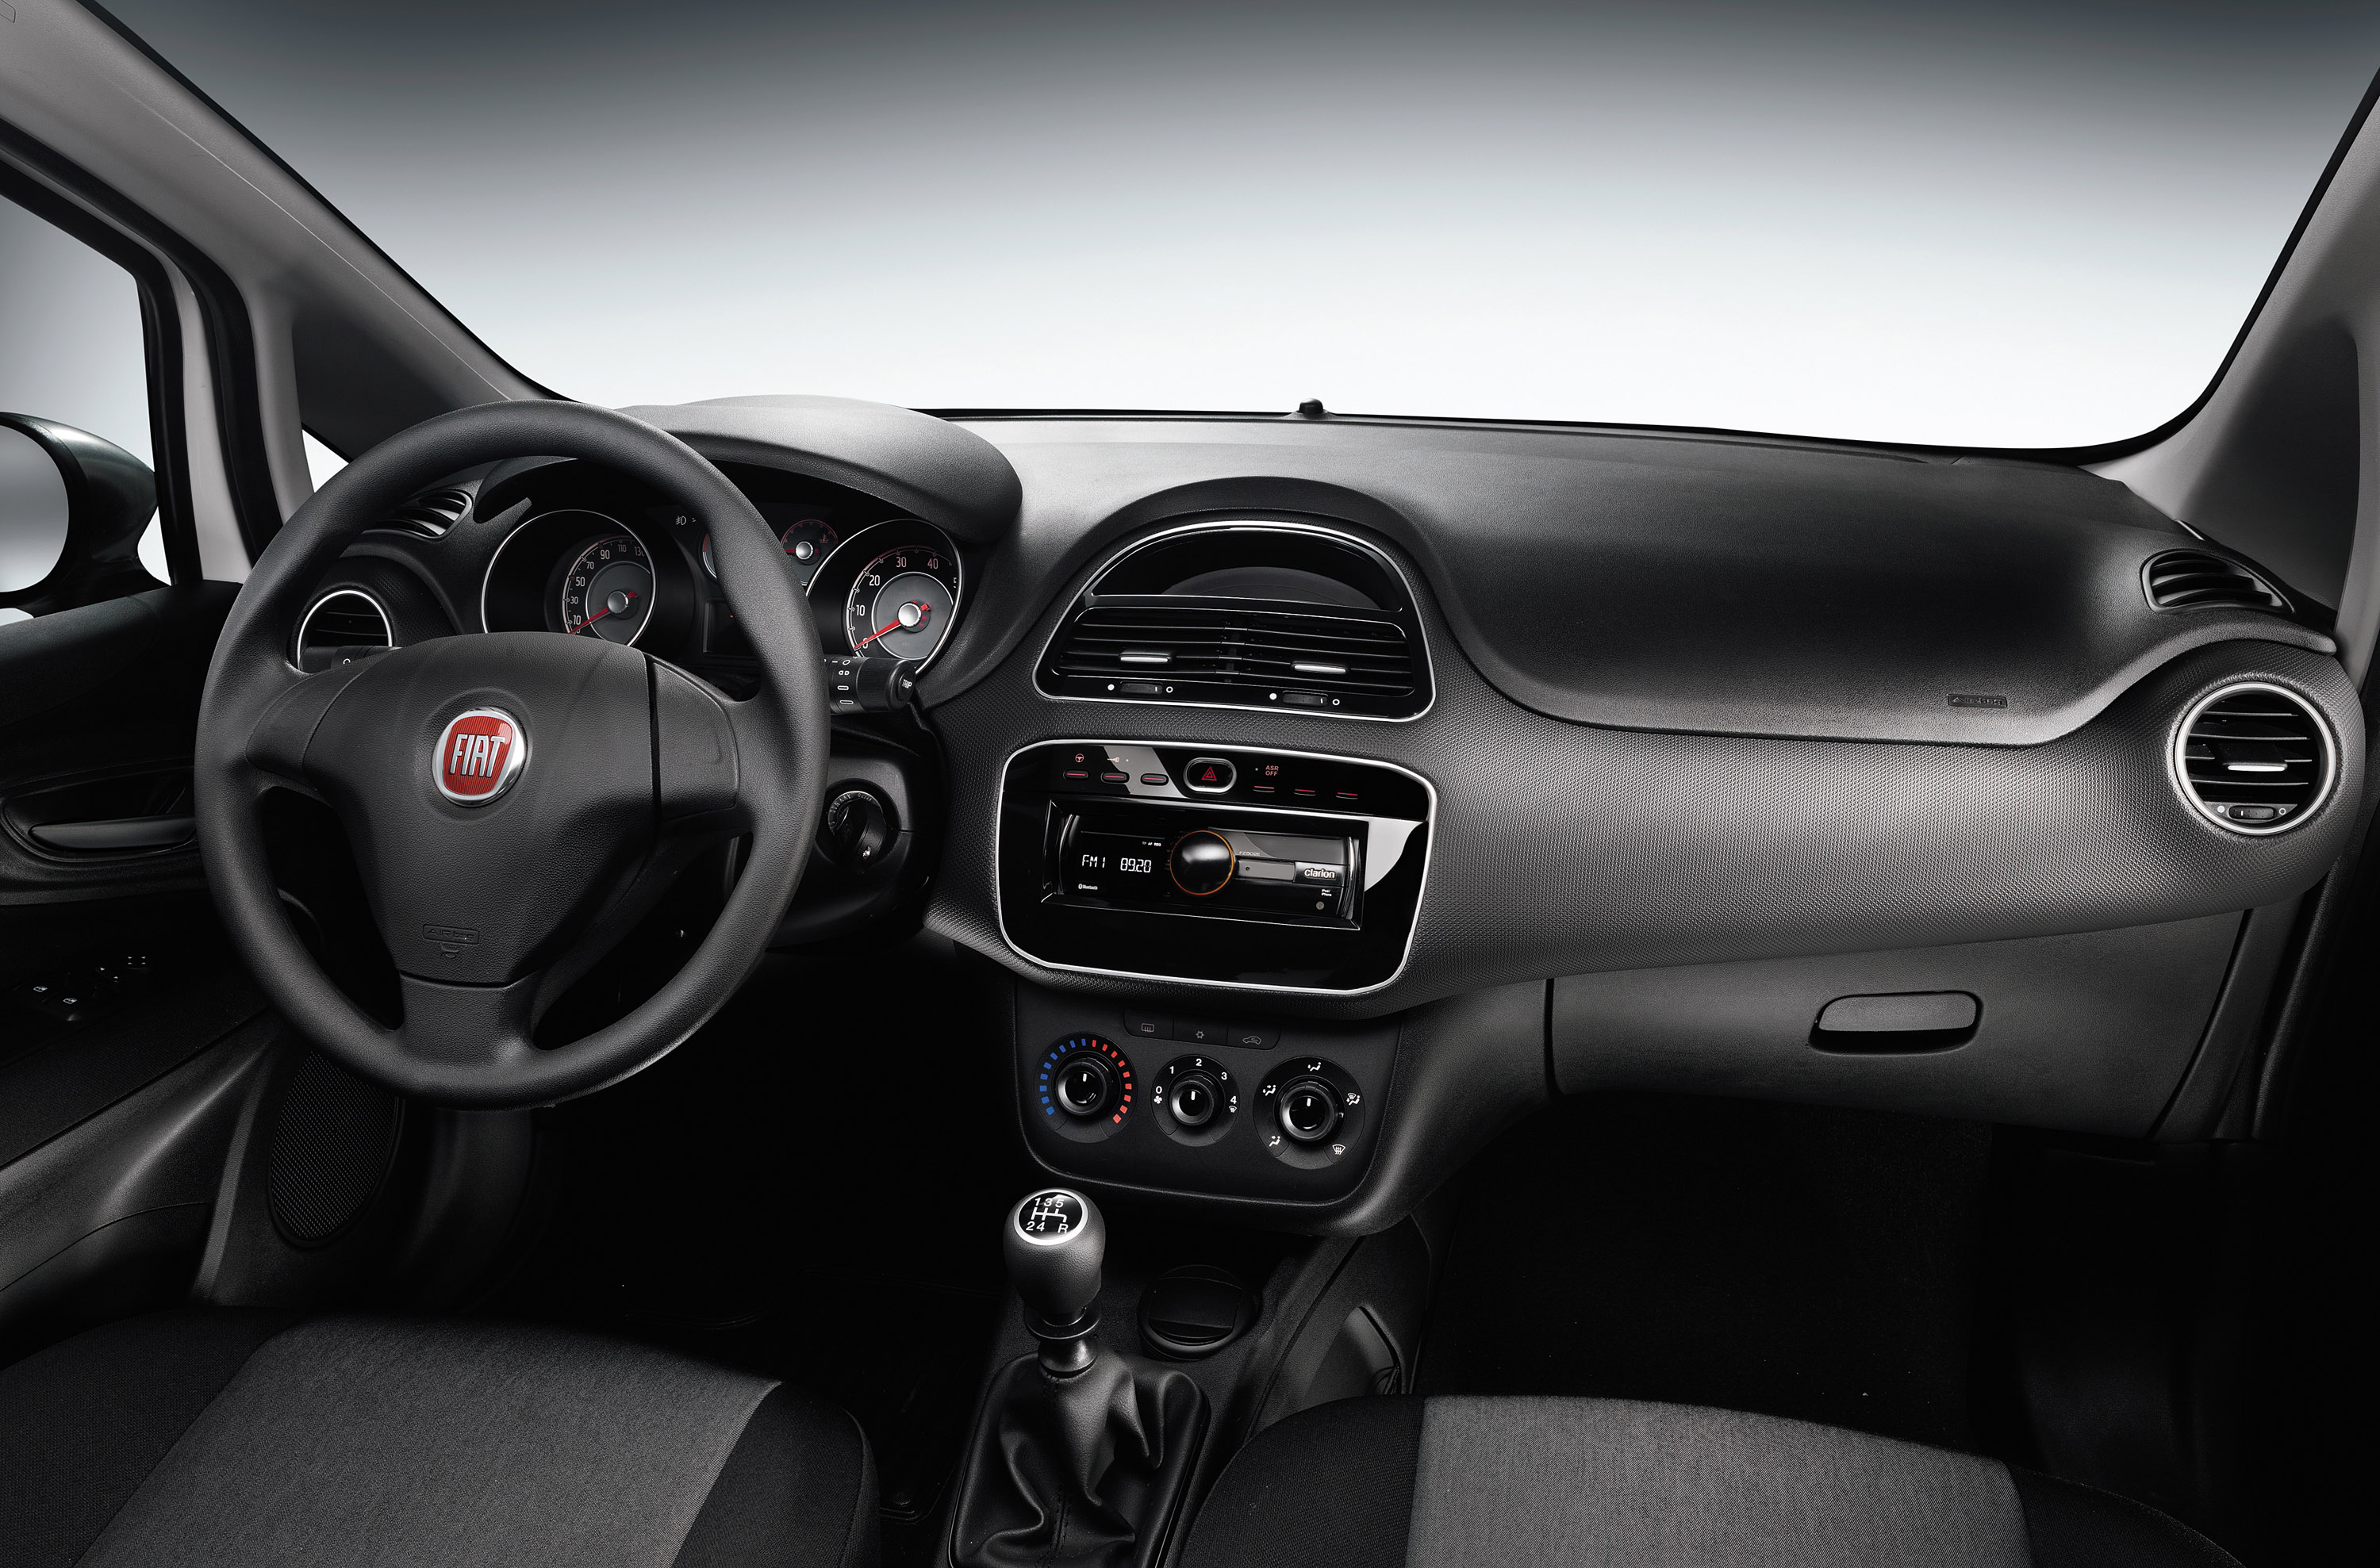 2014 Fiat Punto Young Price